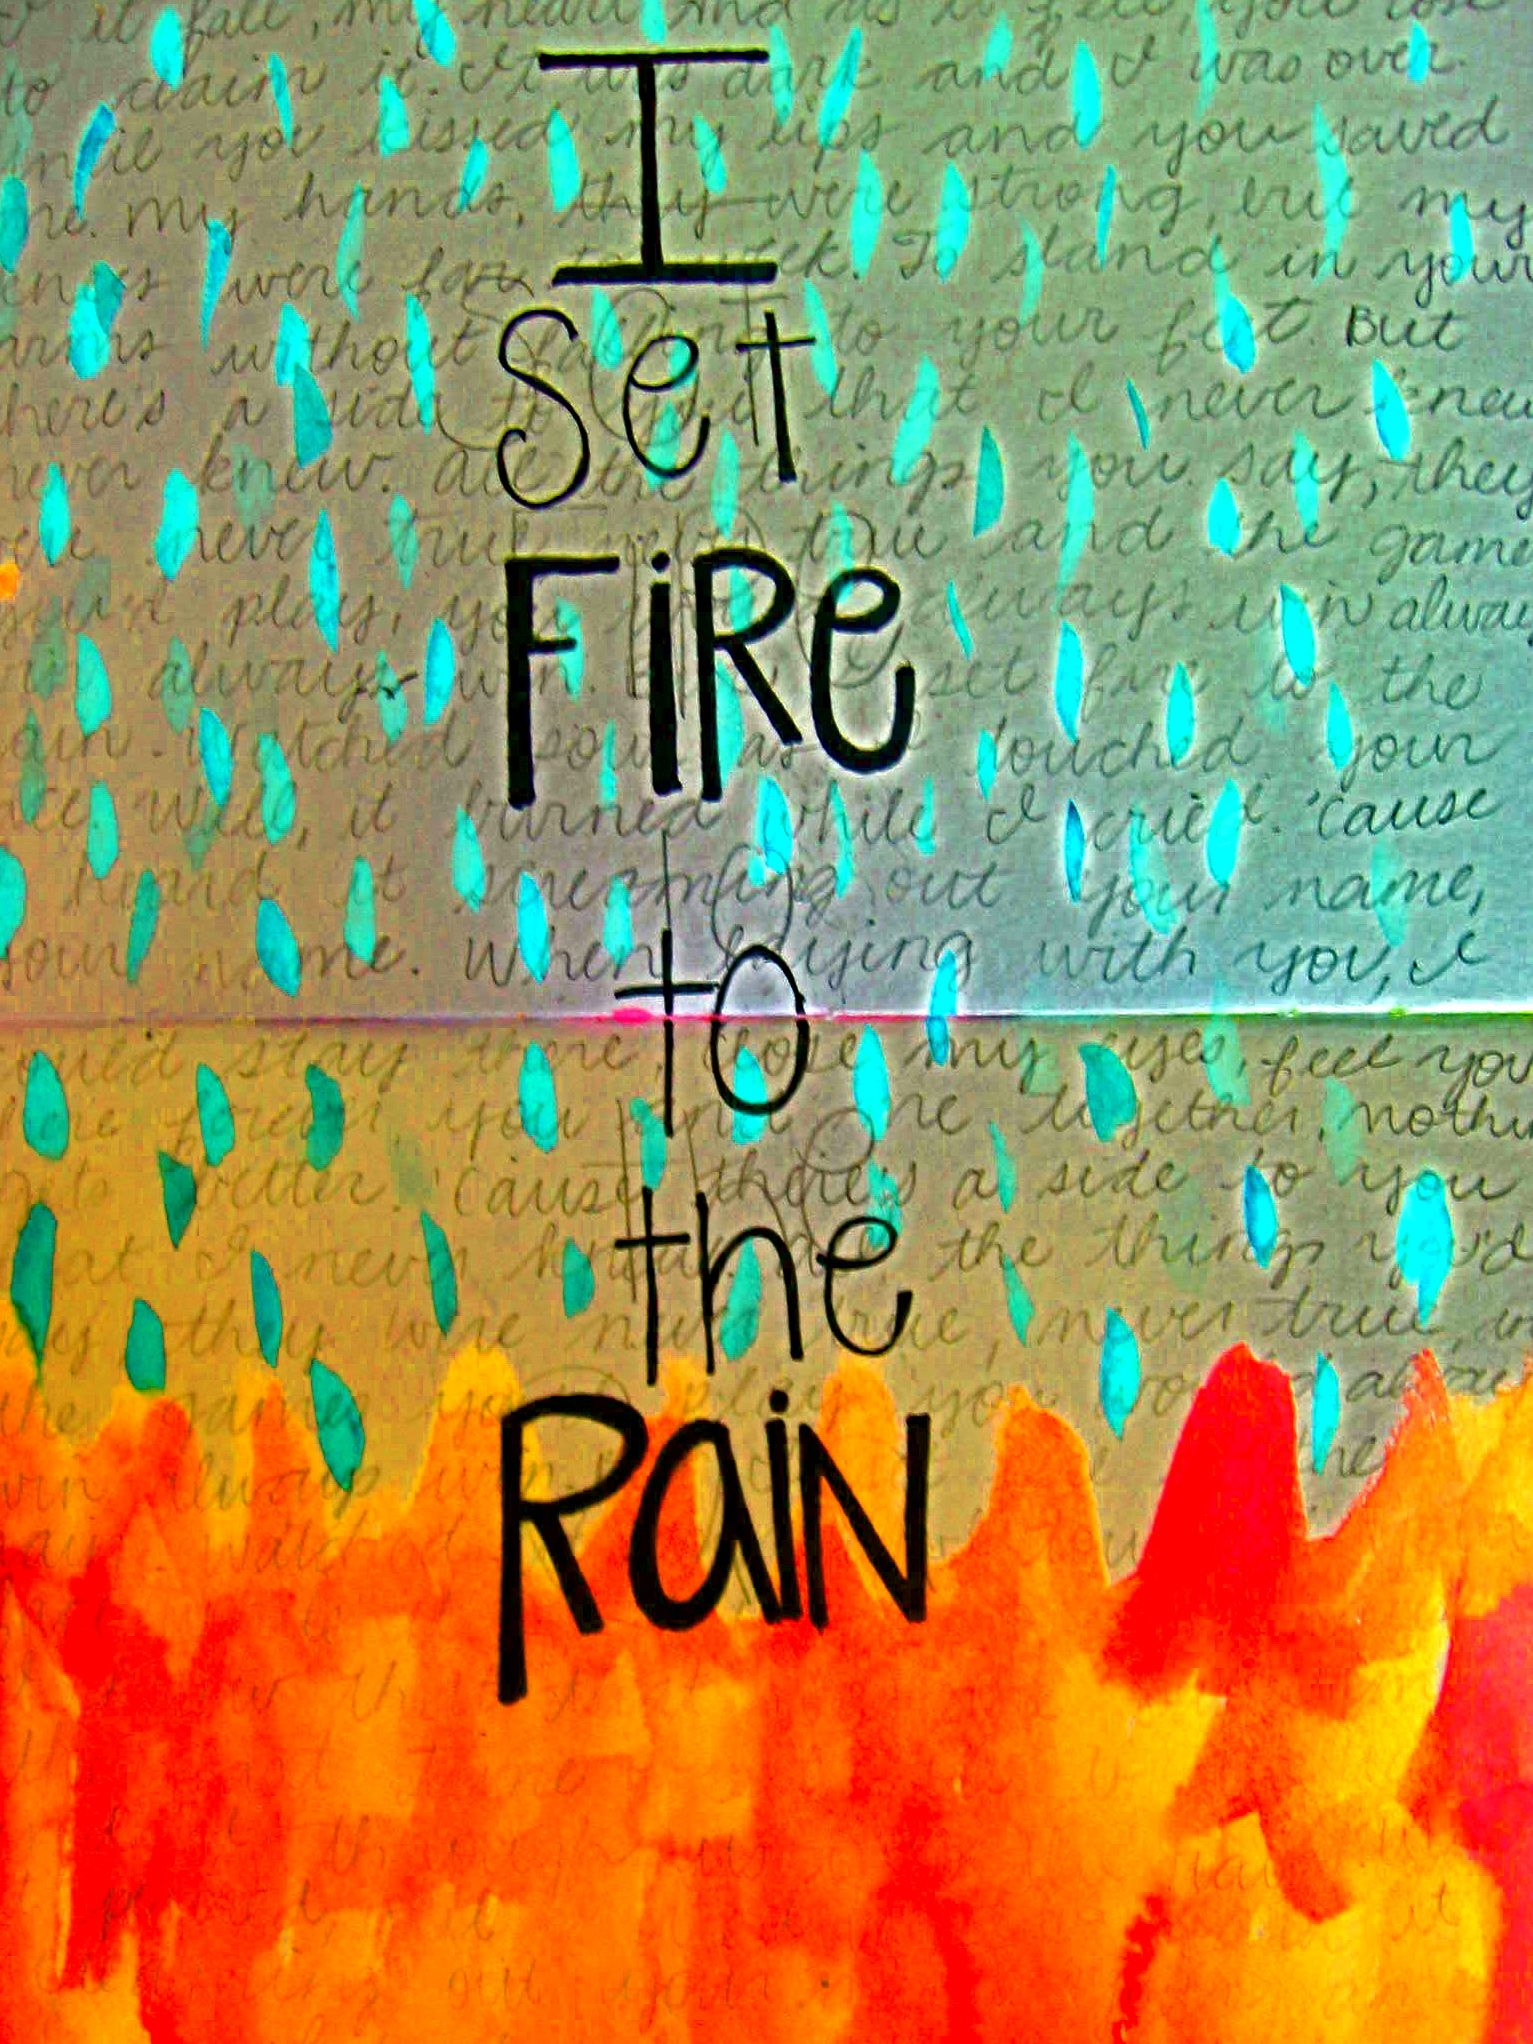 Set Fire To The Rain Adele Adele Love Song Lyric Quotes Love